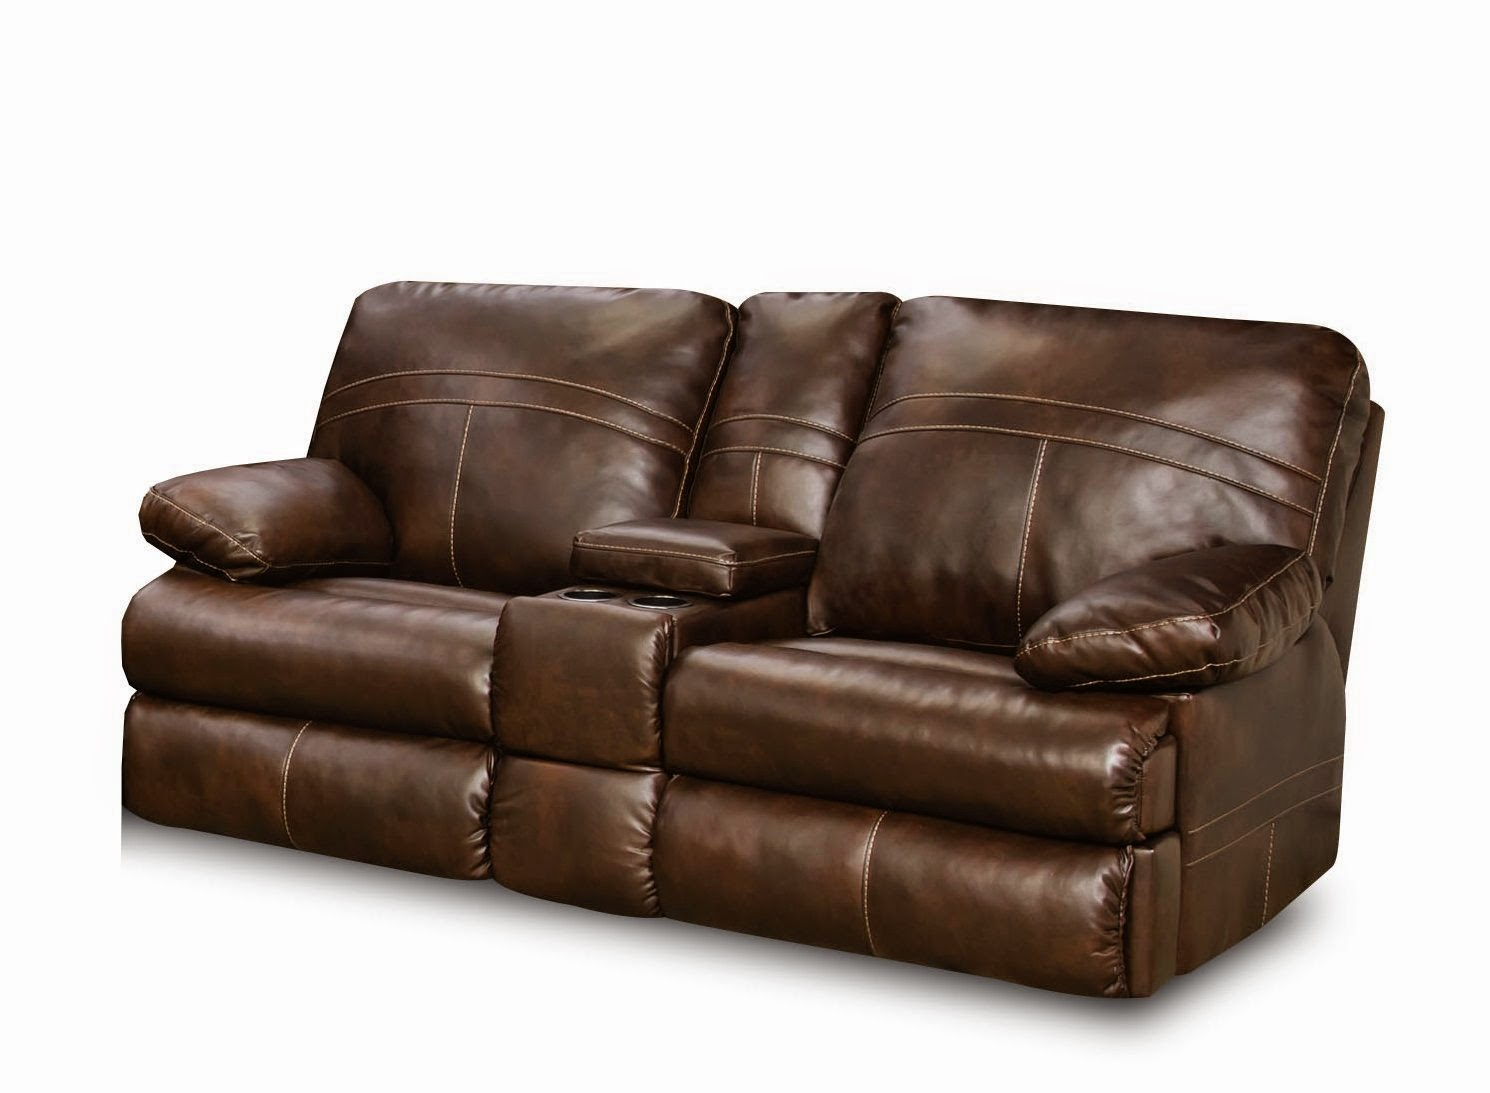 The Best Reclining Leather Sofa Reviews: Simmons Leather ...